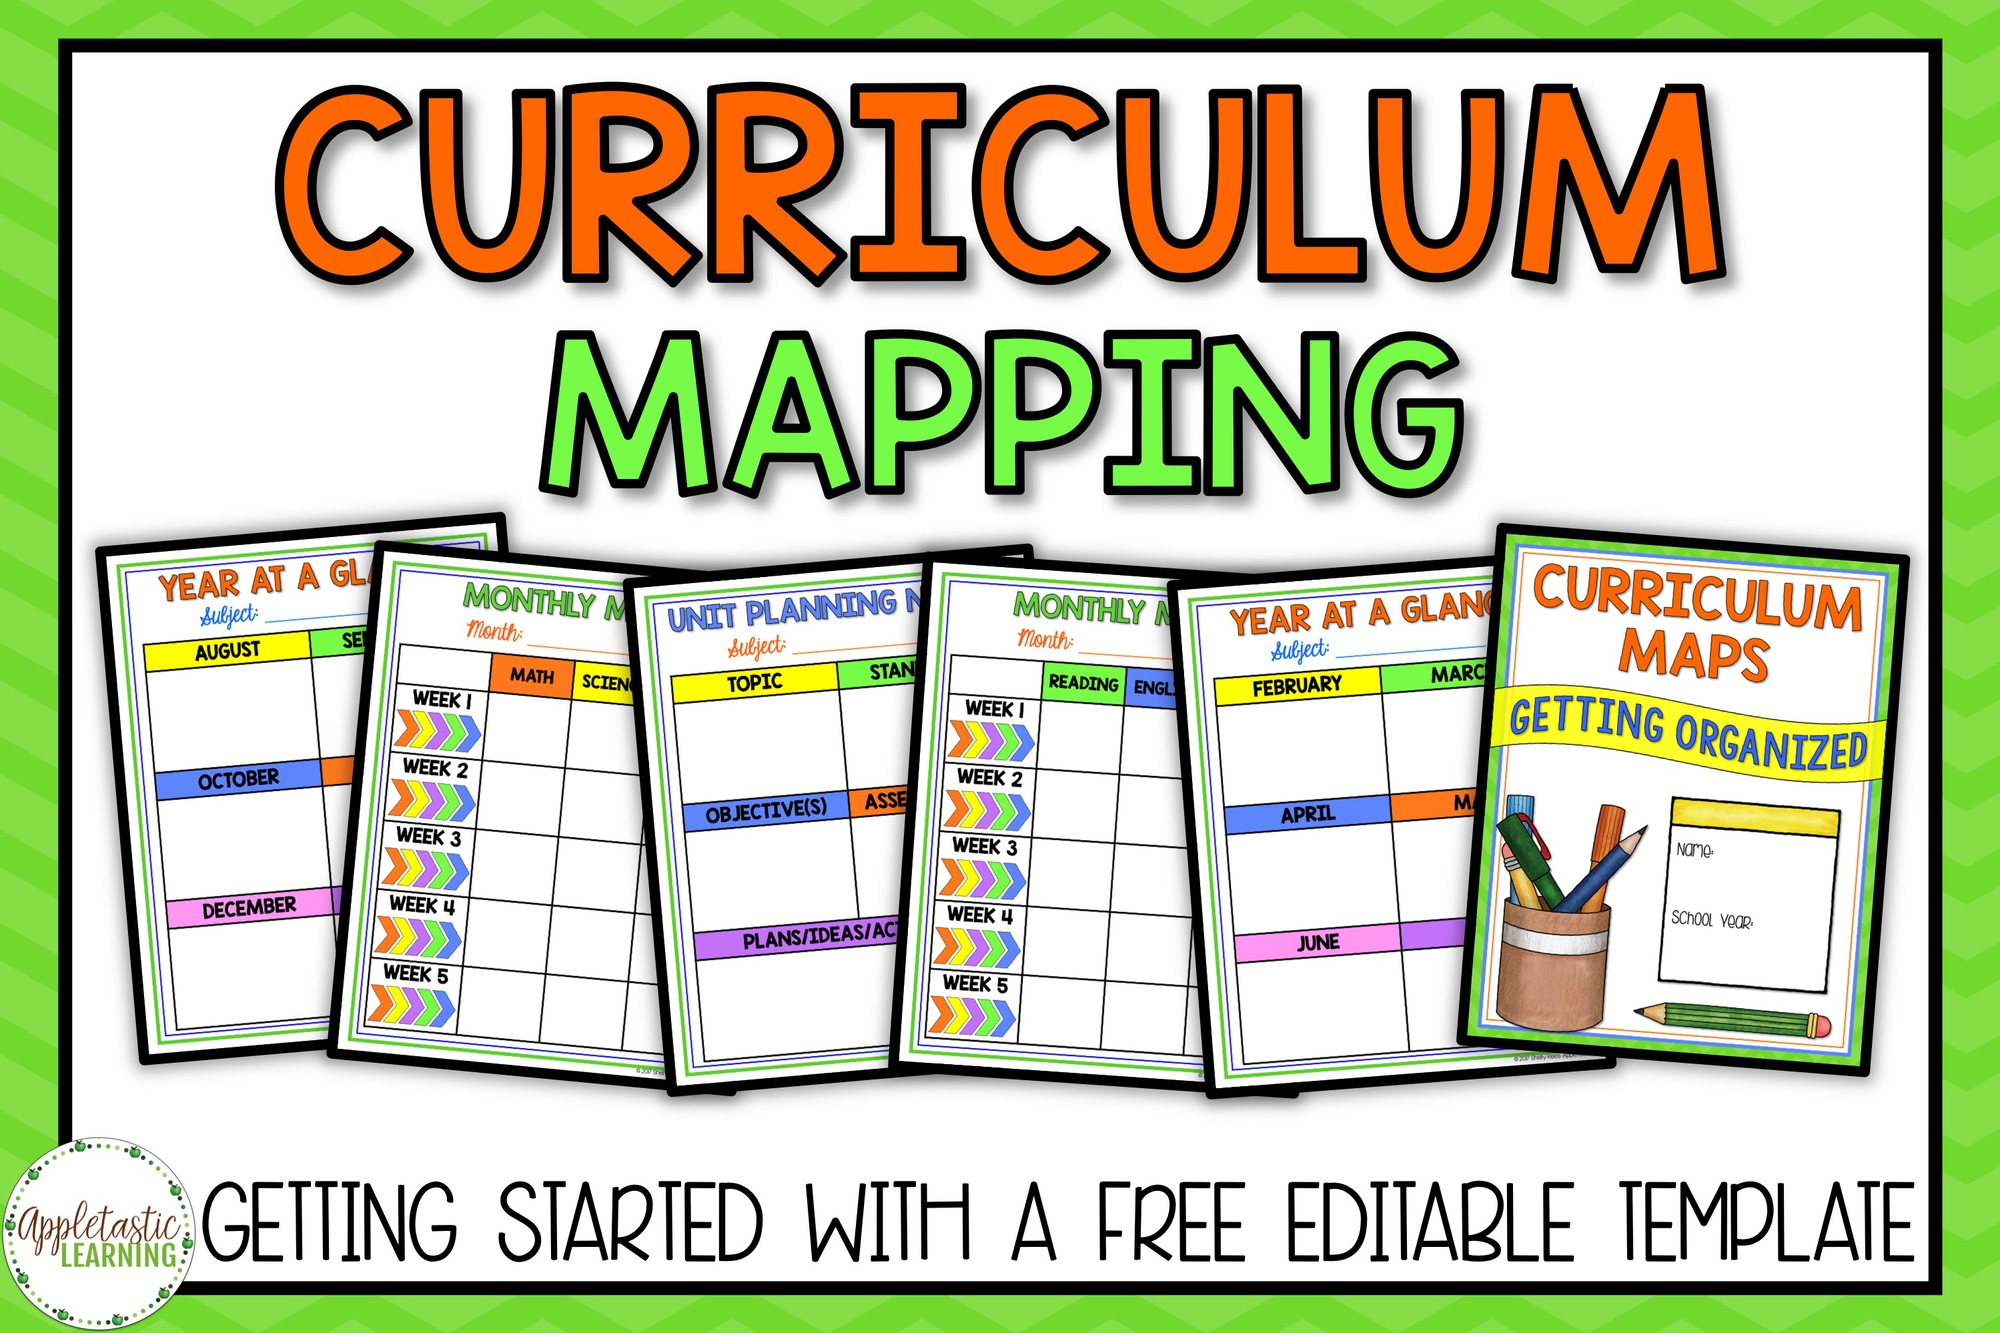 Curriculum Mapping – Getting Started with a Free Curriculum Map Template